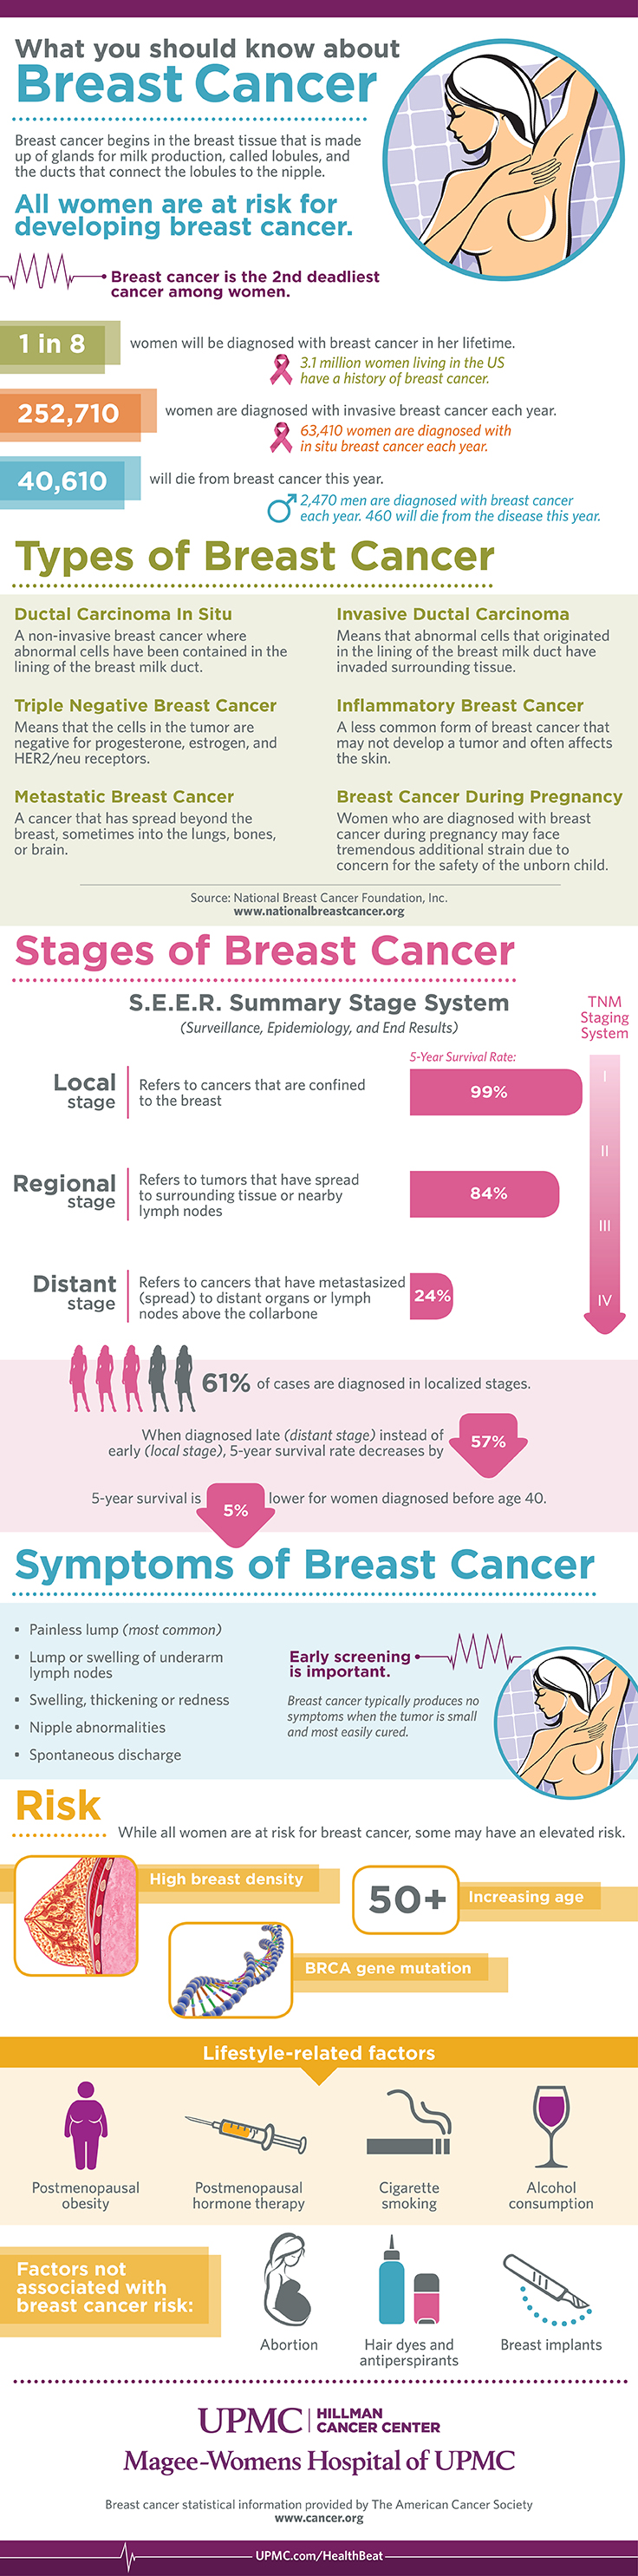 Learn more about breast cancer statistics